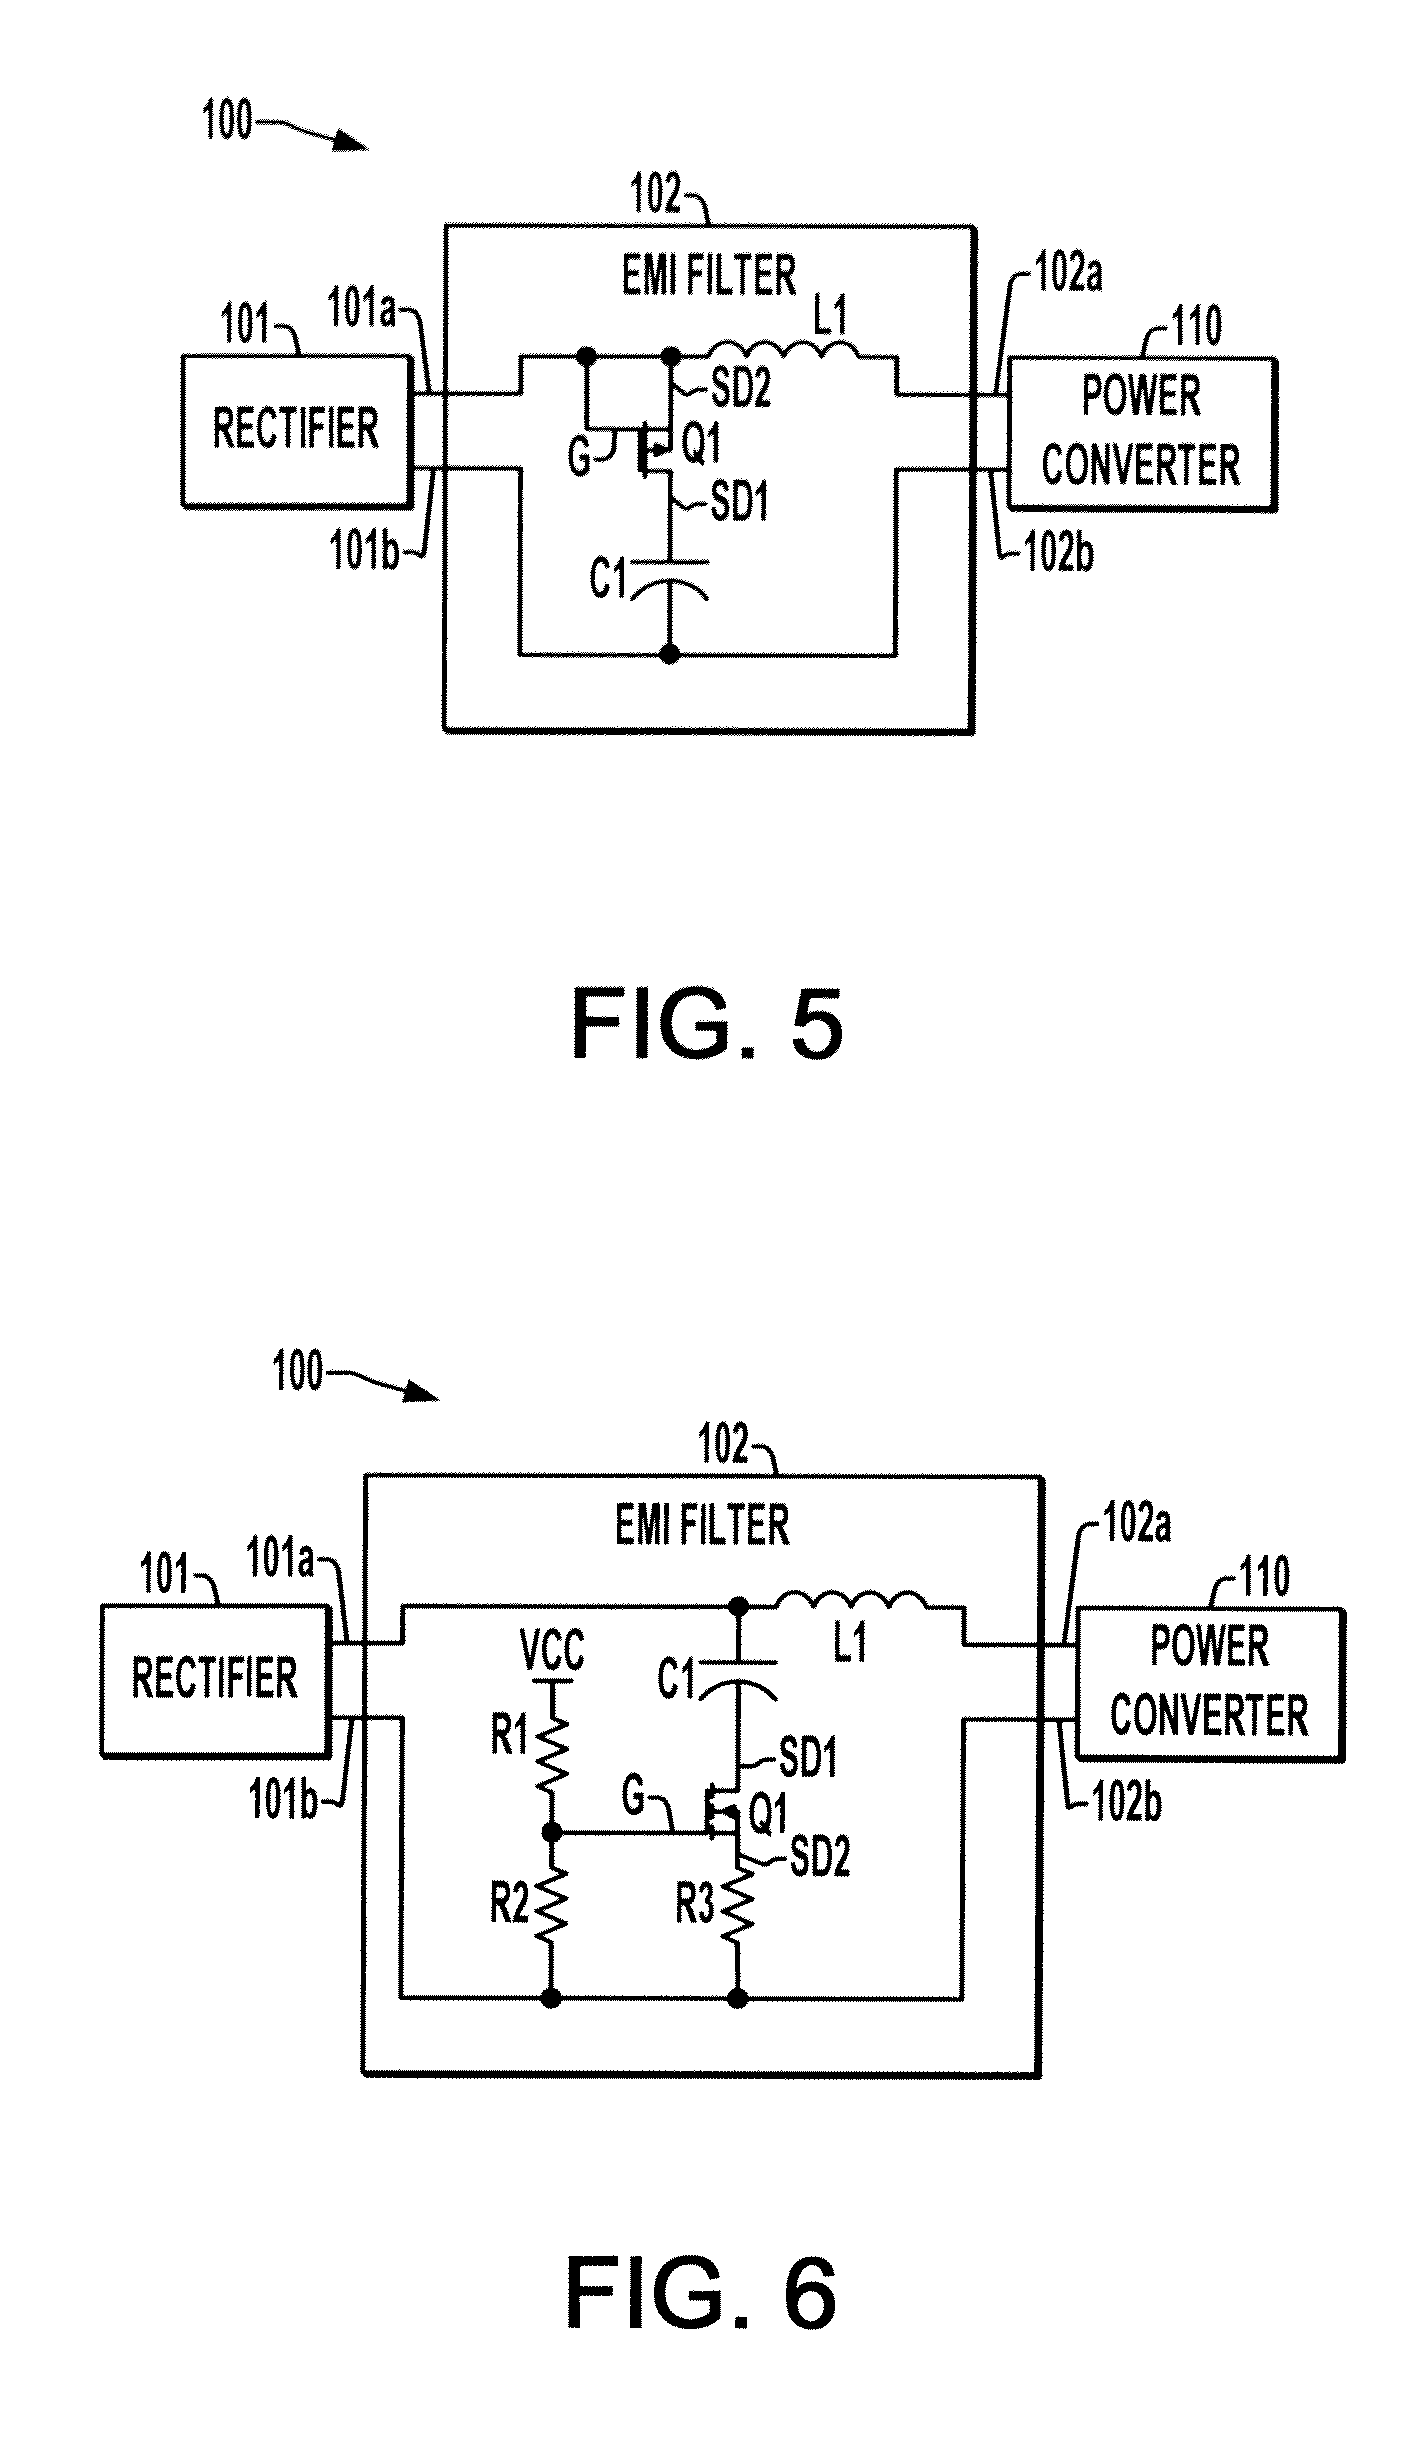 patent us20120235597 - lighting power circuit with peak current limiter for emi filter